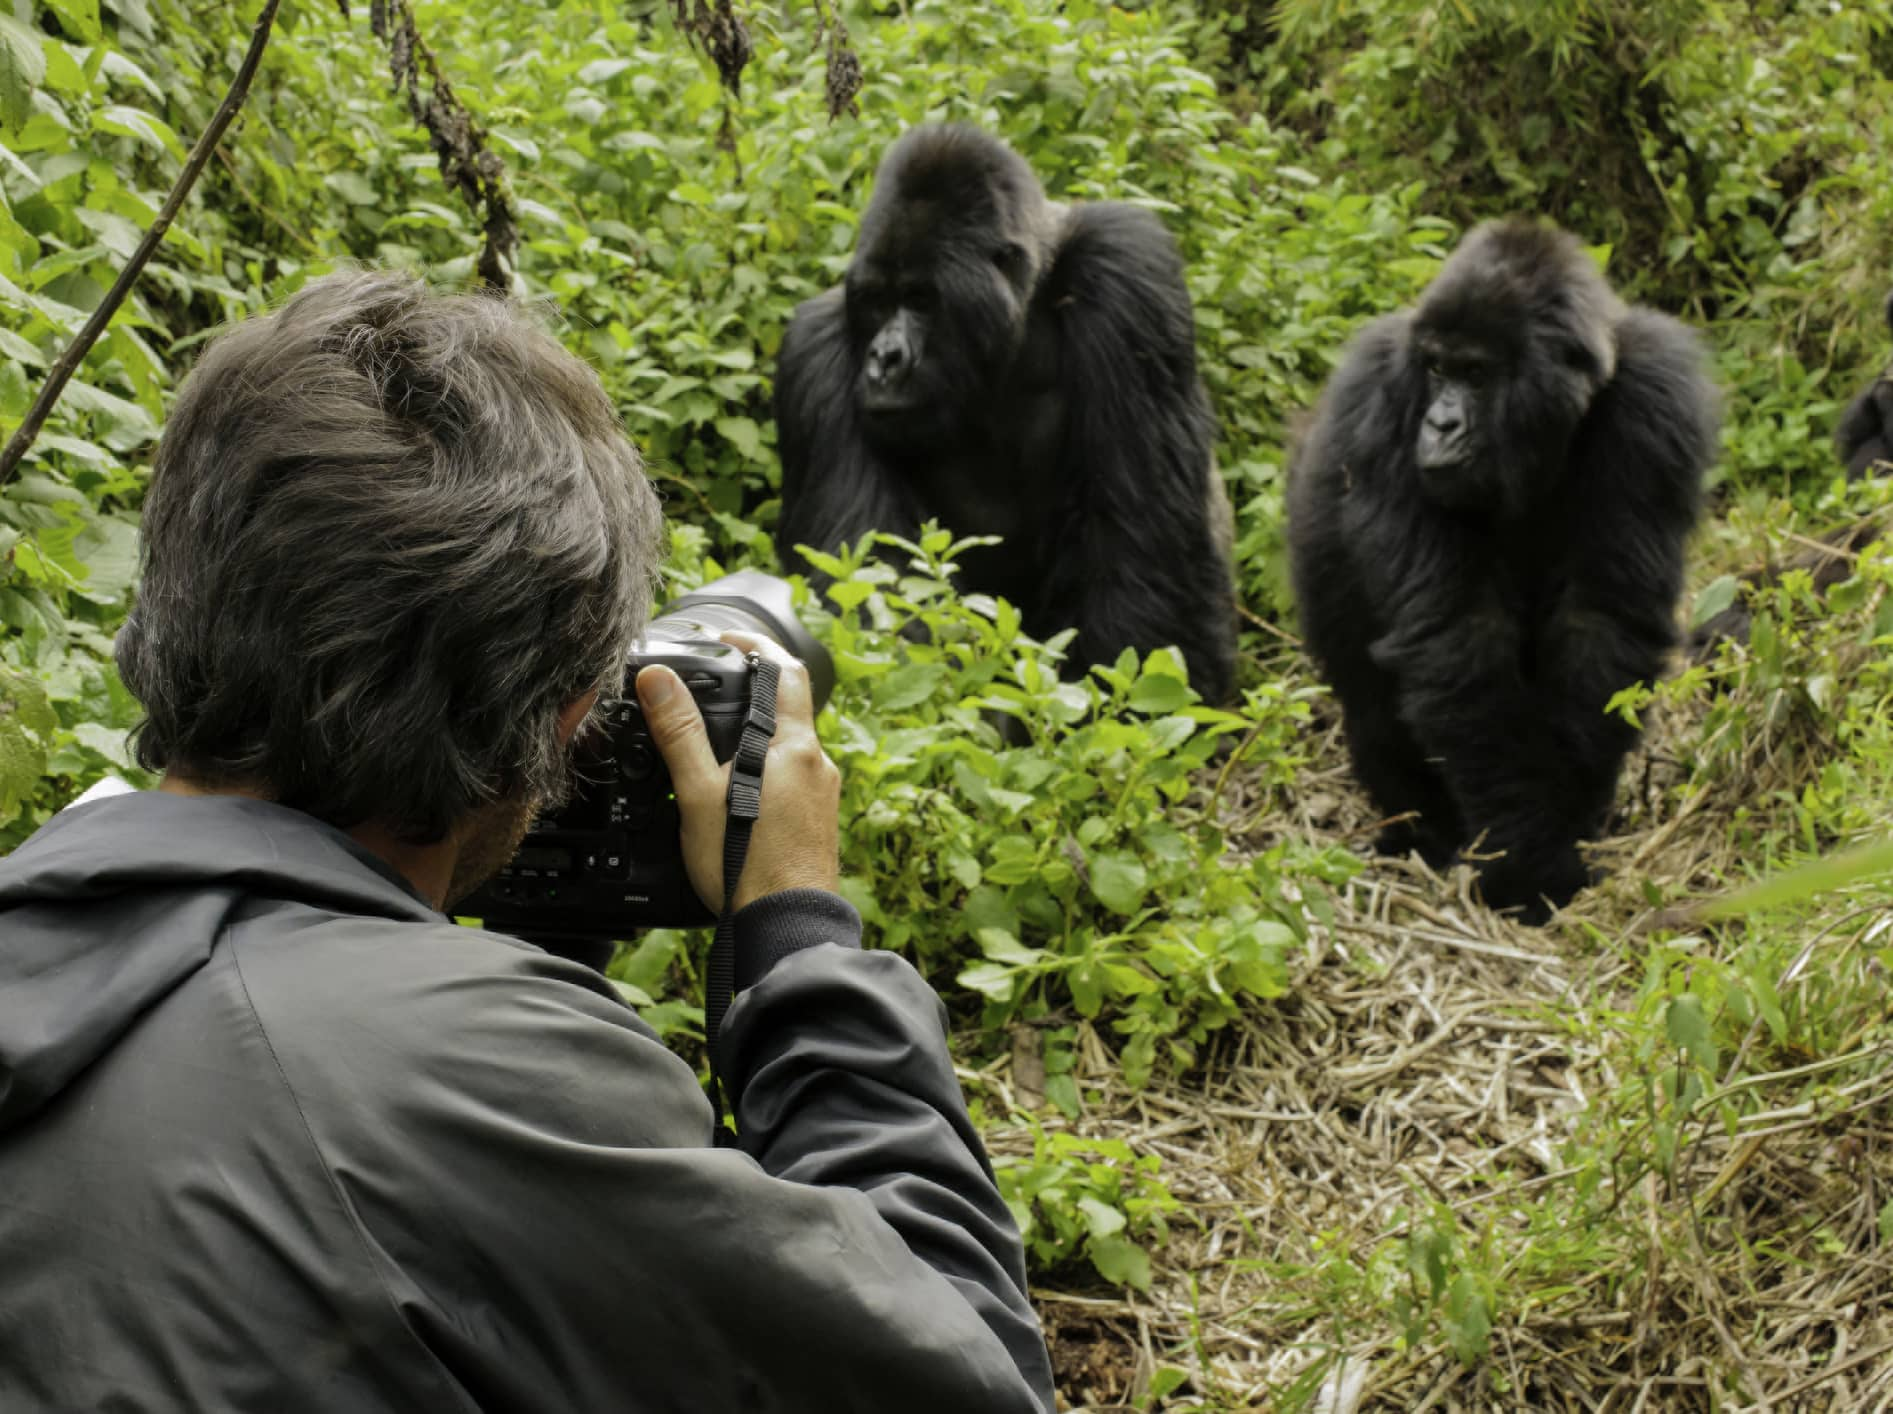 Come face-to-face with a family of mountain gorillas.